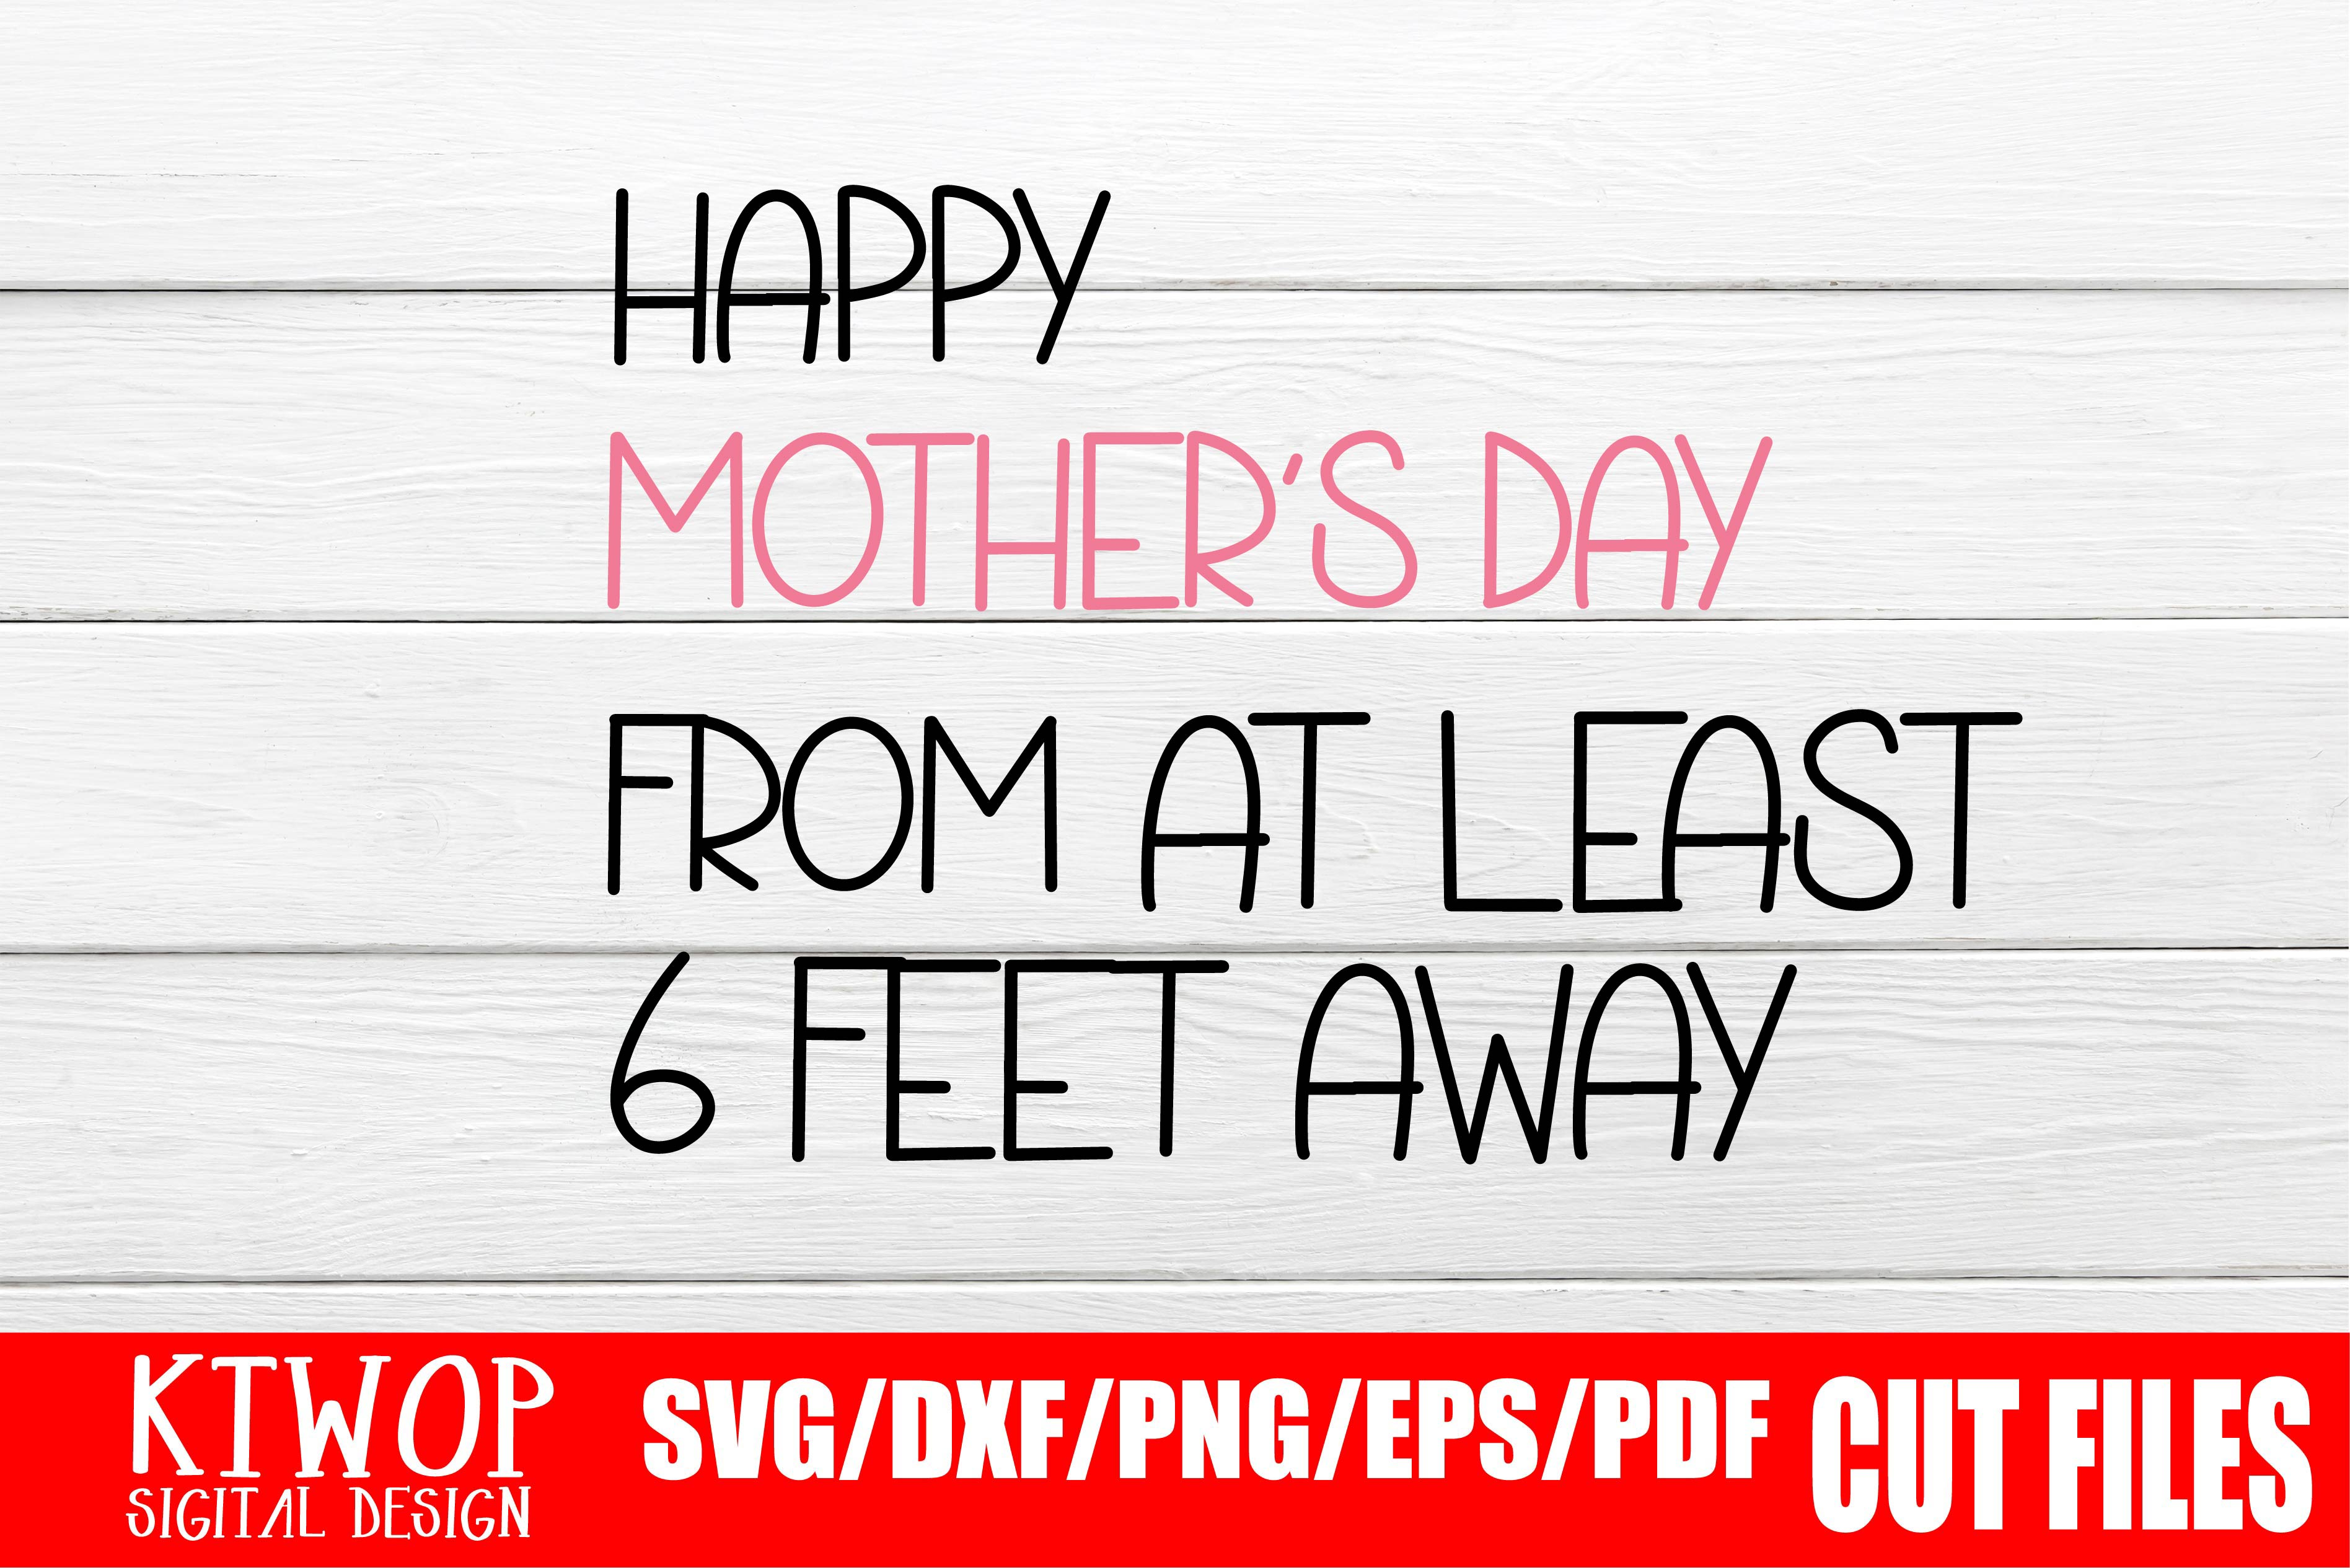 Download Free Happy Mother S Day From At Least 6 Feet Away Graphic By Ktwop for Cricut Explore, Silhouette and other cutting machines.